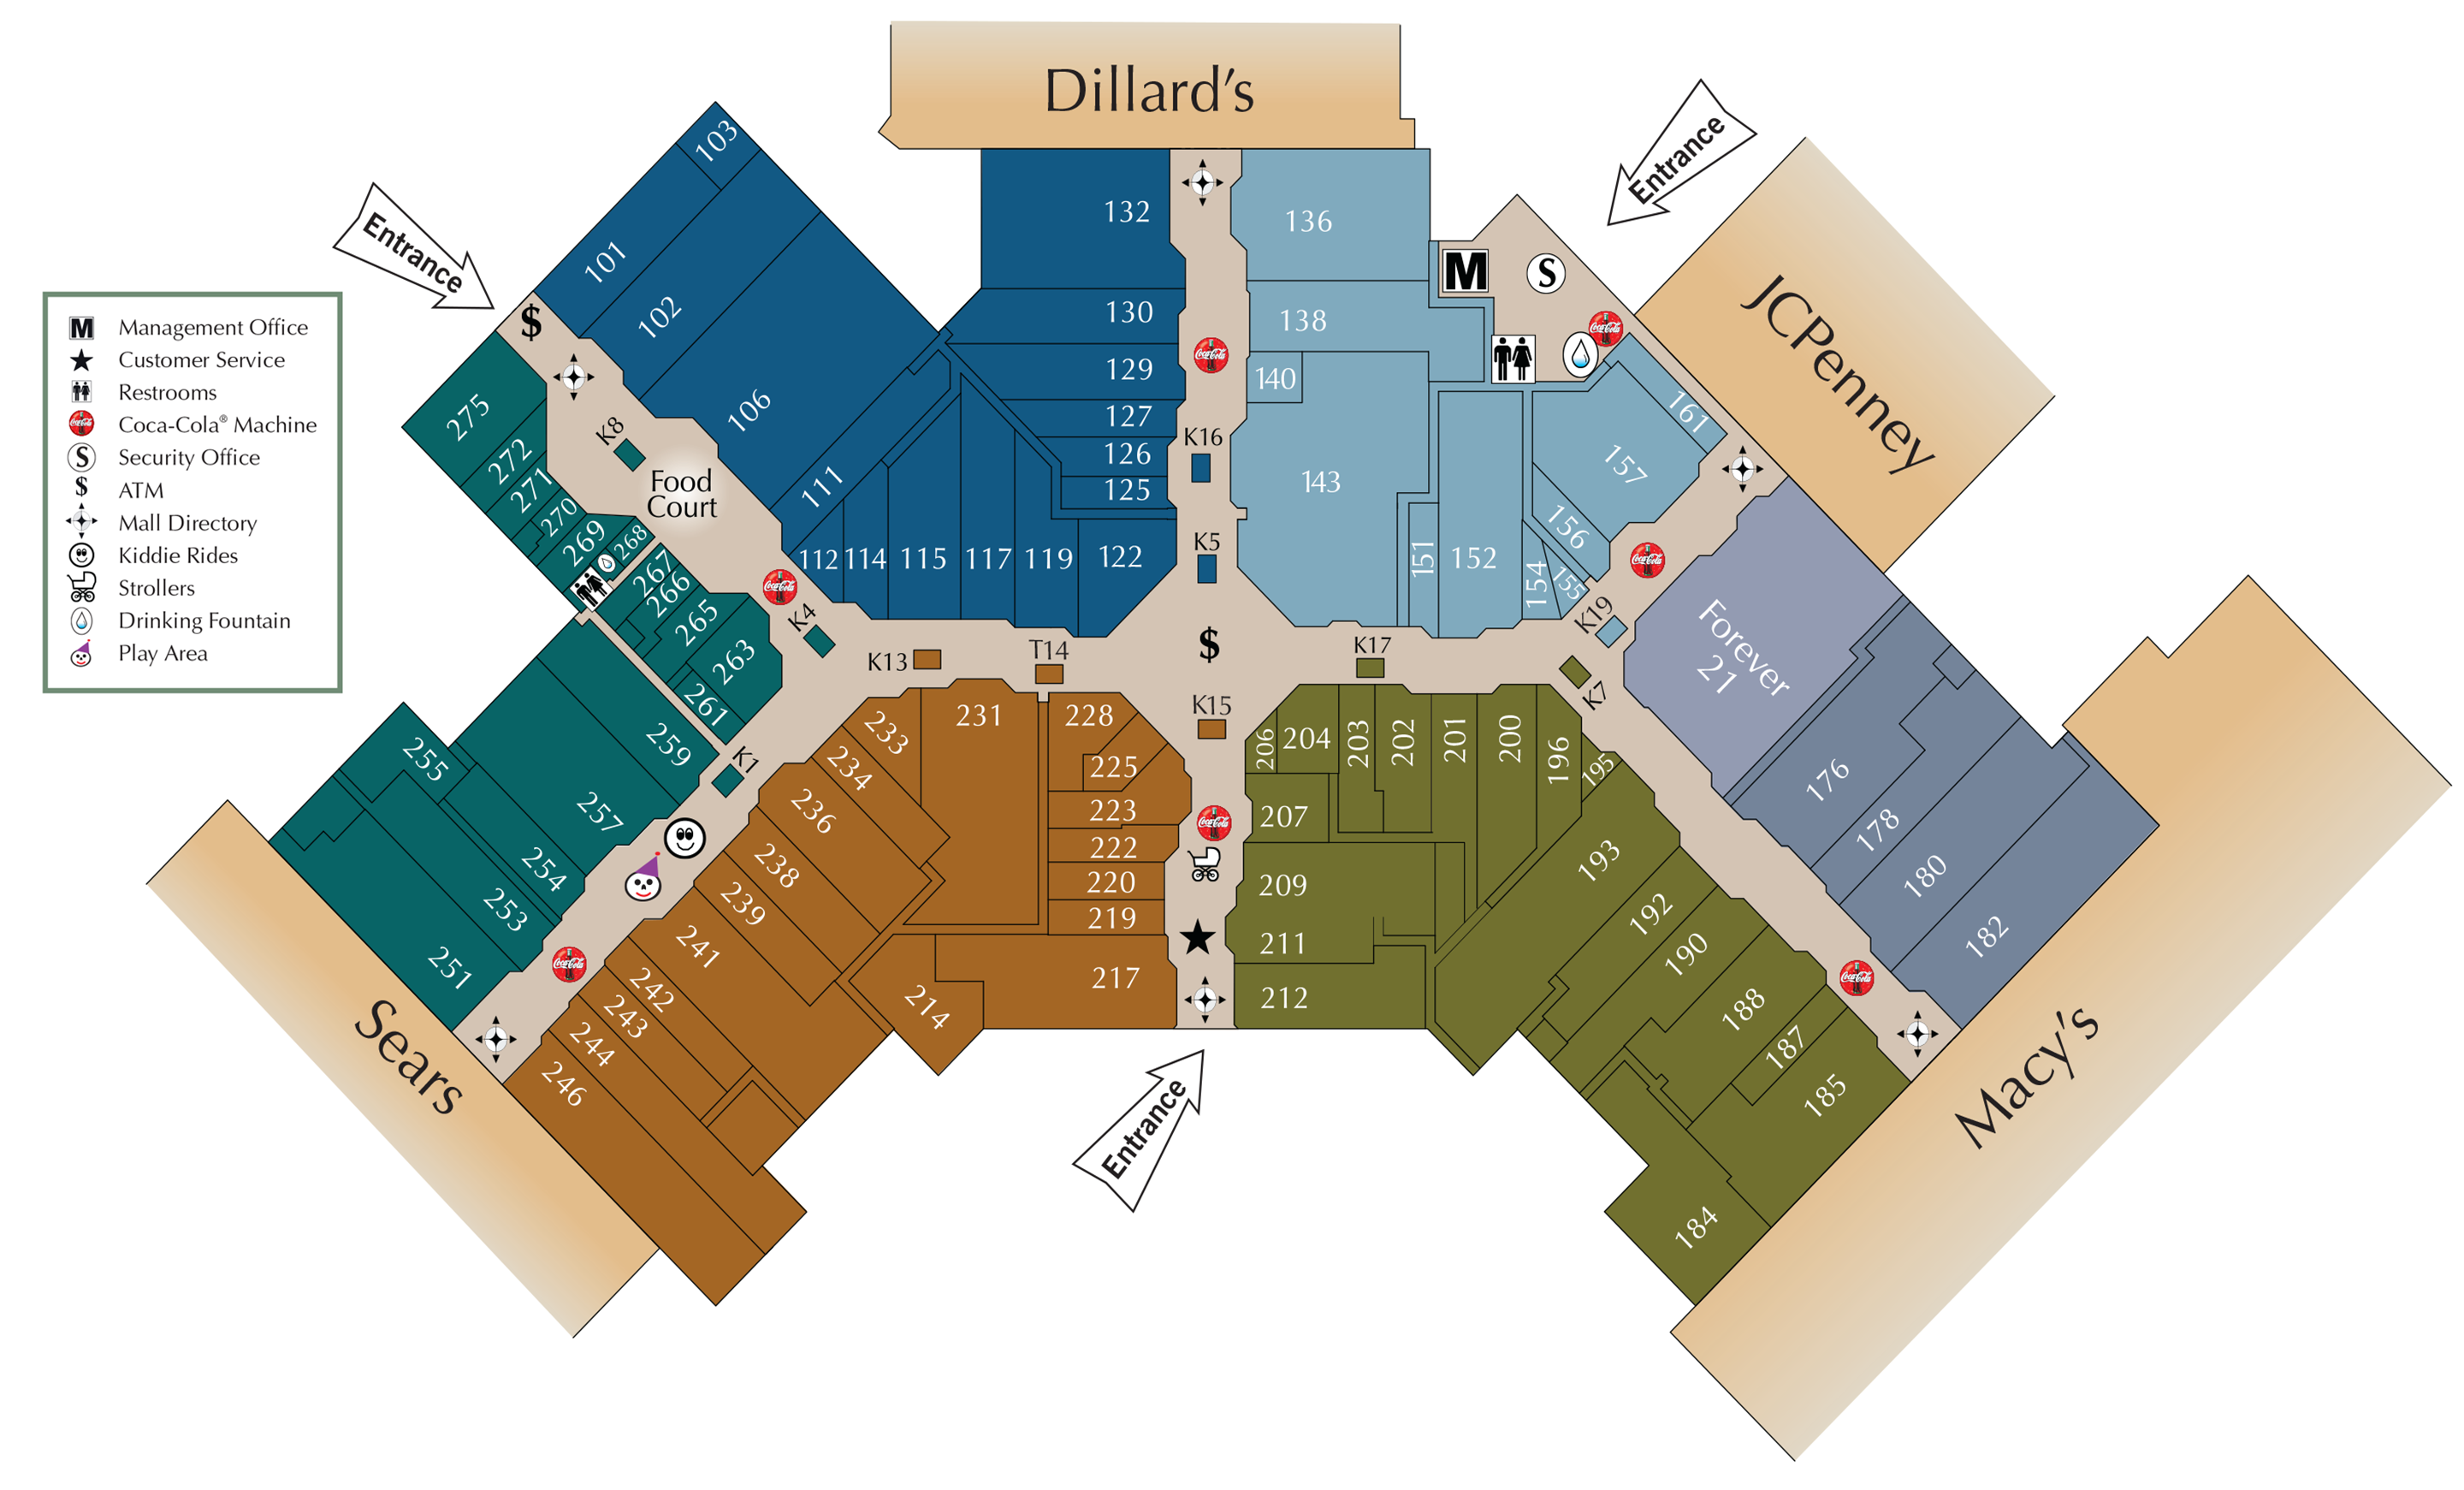 Mall directory acadiana mall for Jewelry stores in slidell louisiana